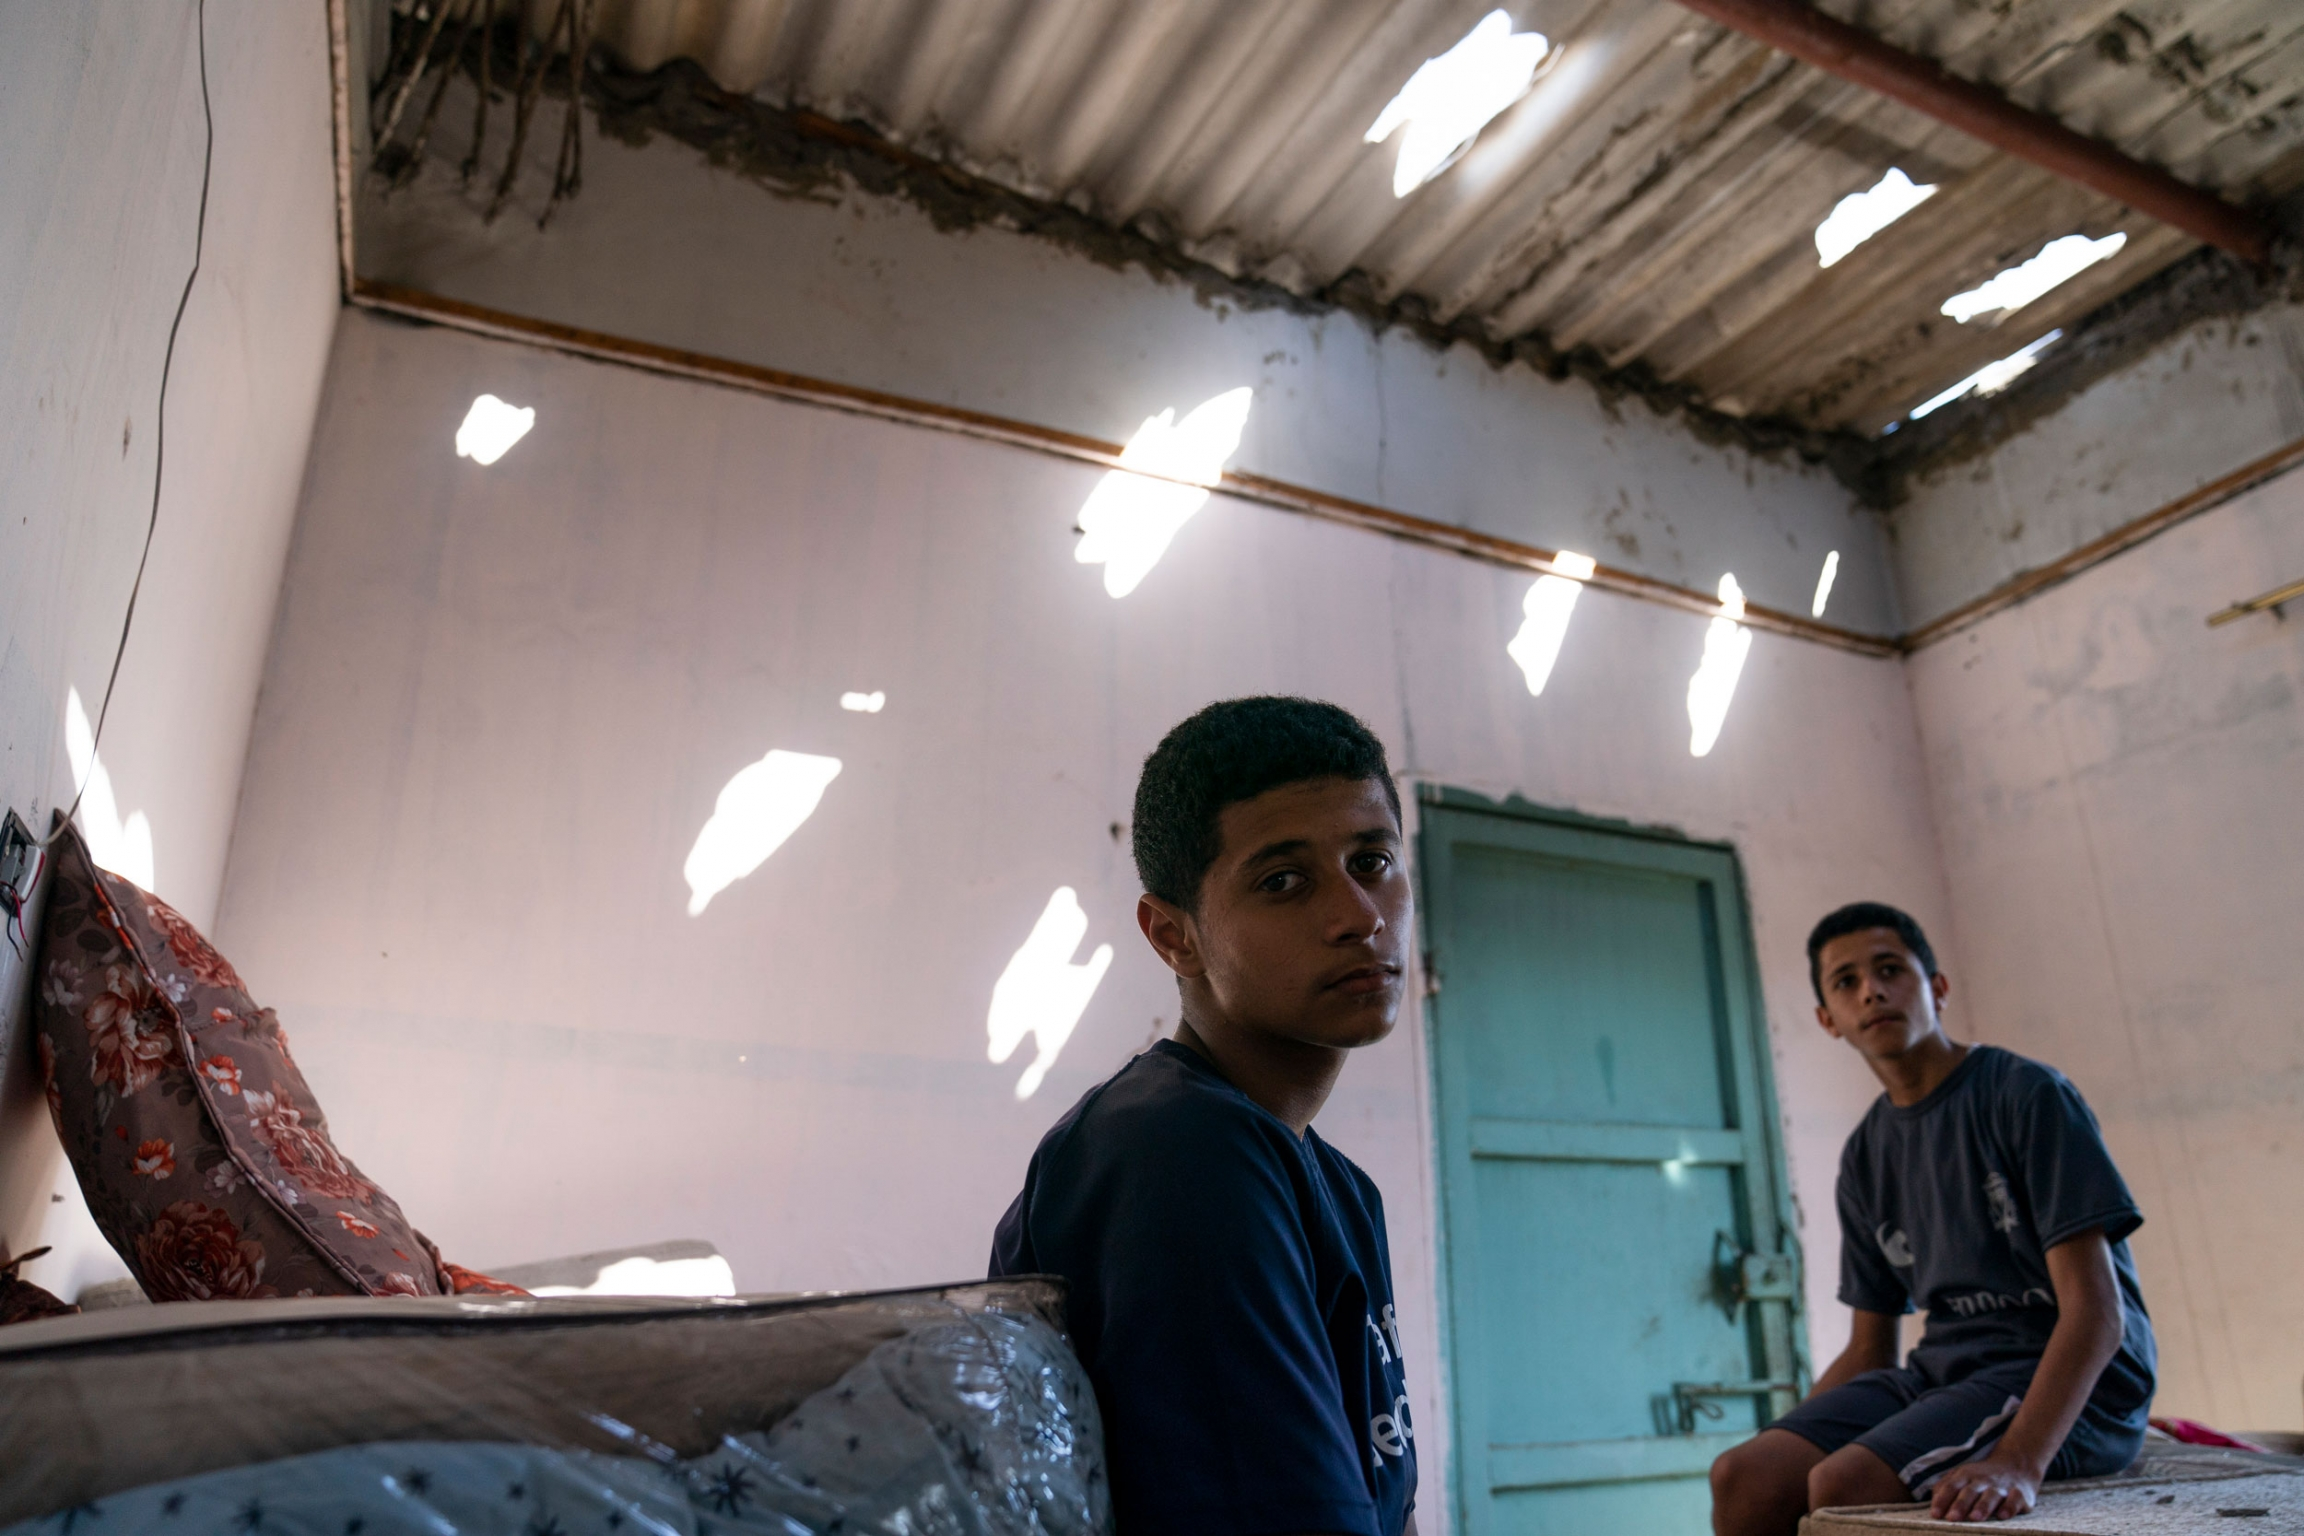 Two teenage boys sit in a room with holes in the cealing.